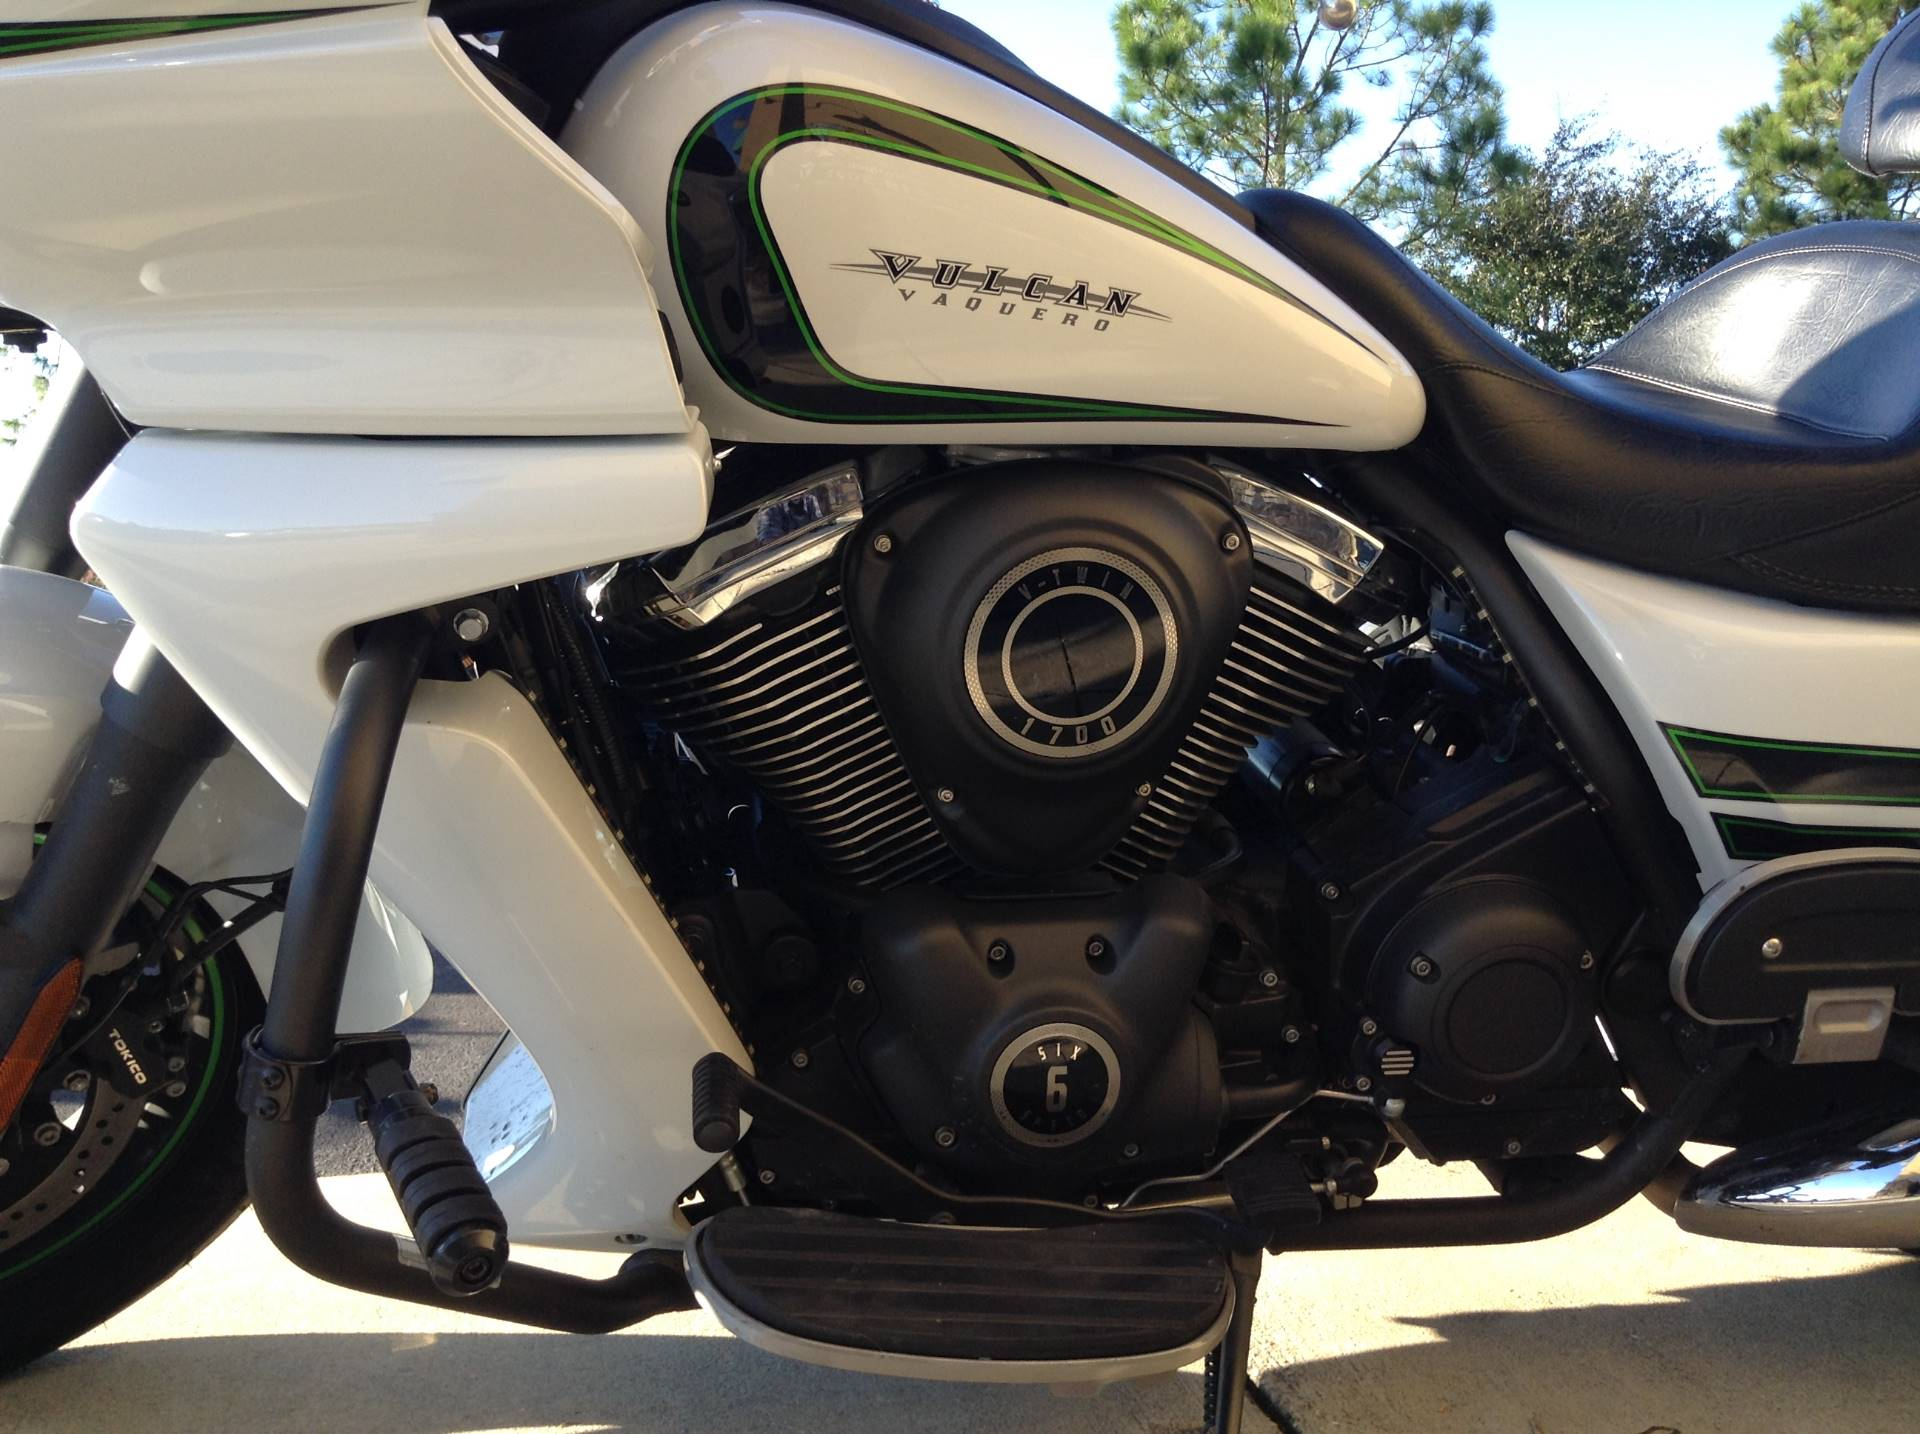 2016 KAWASAKI VULCAN 1700 VAQUERO ABS in Panama City Beach, Florida